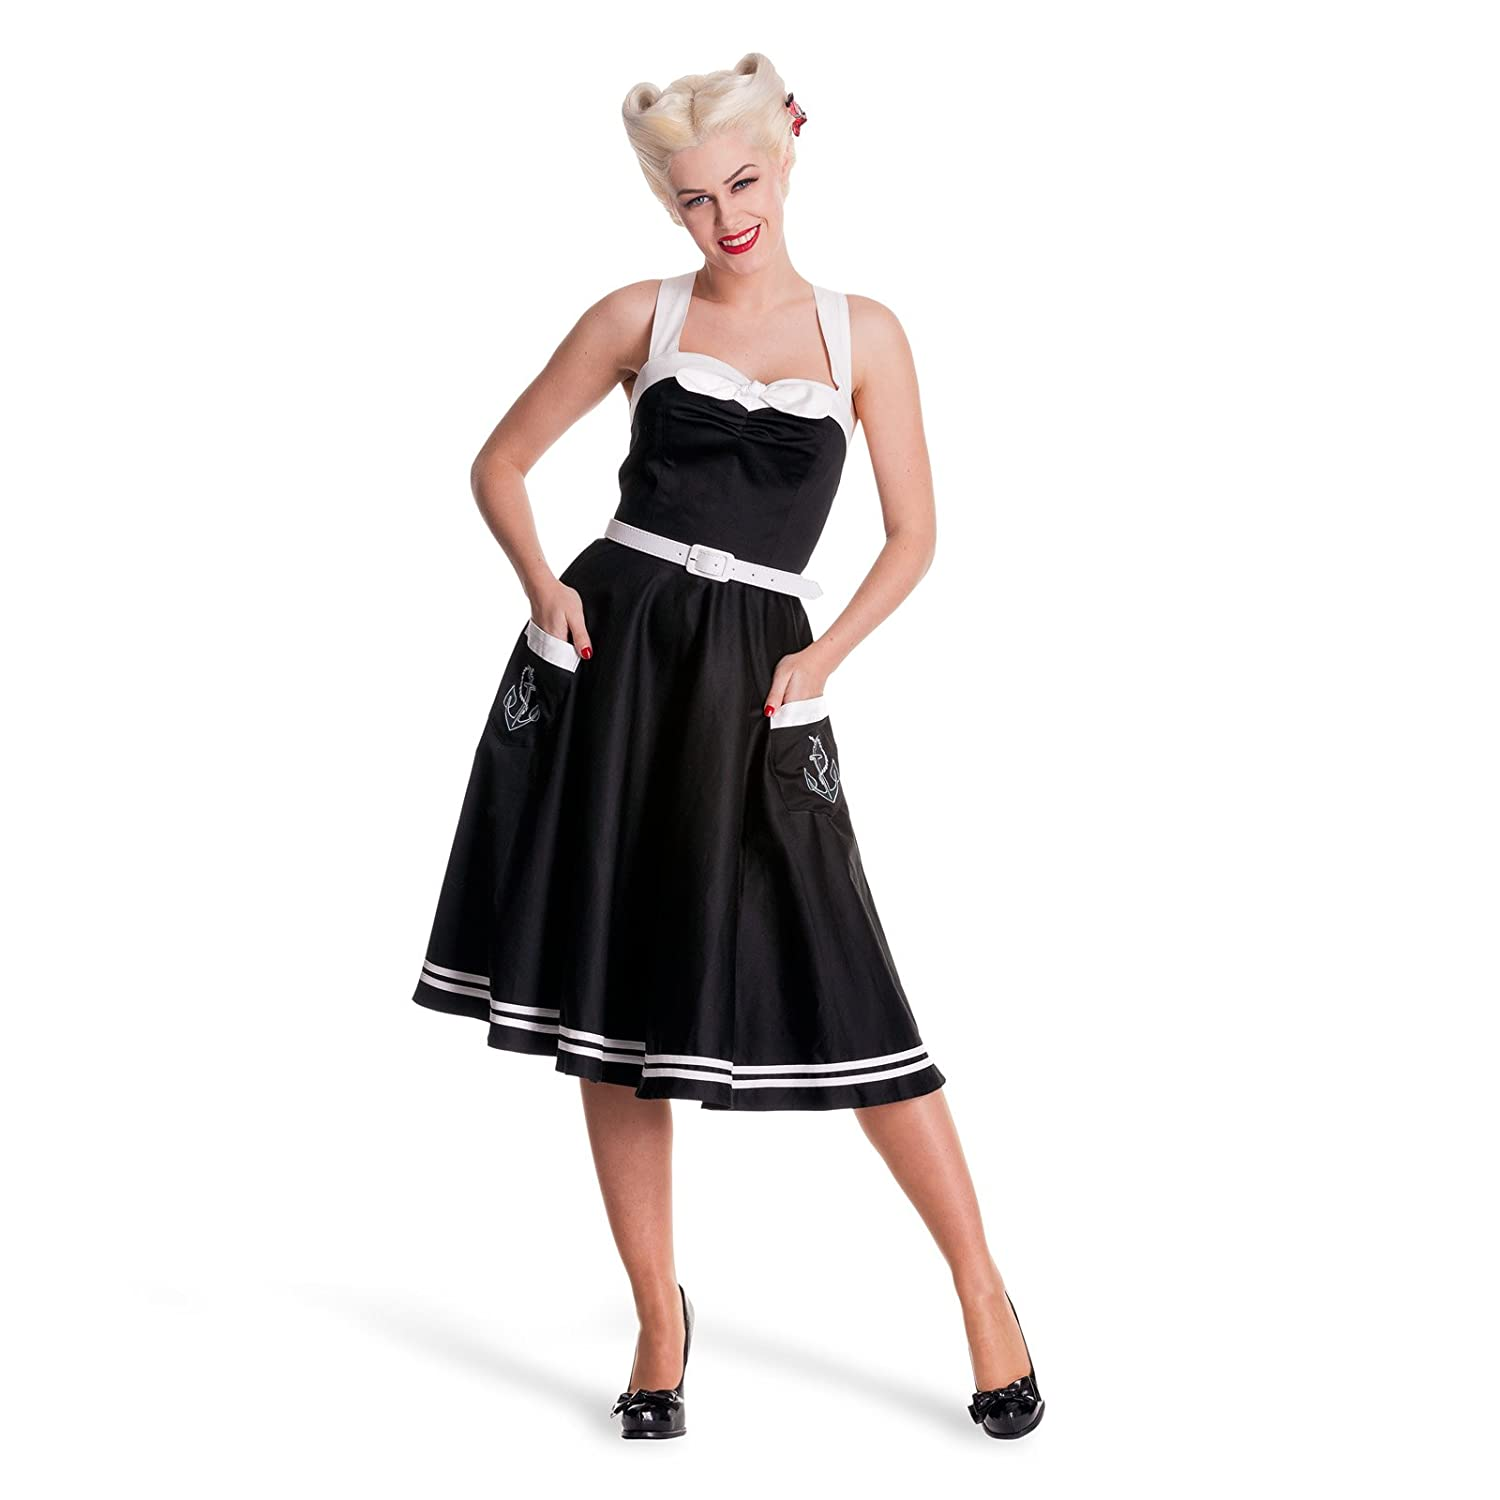 Rockabilly 50s Dress - Siren - Sailor Inspired - Black